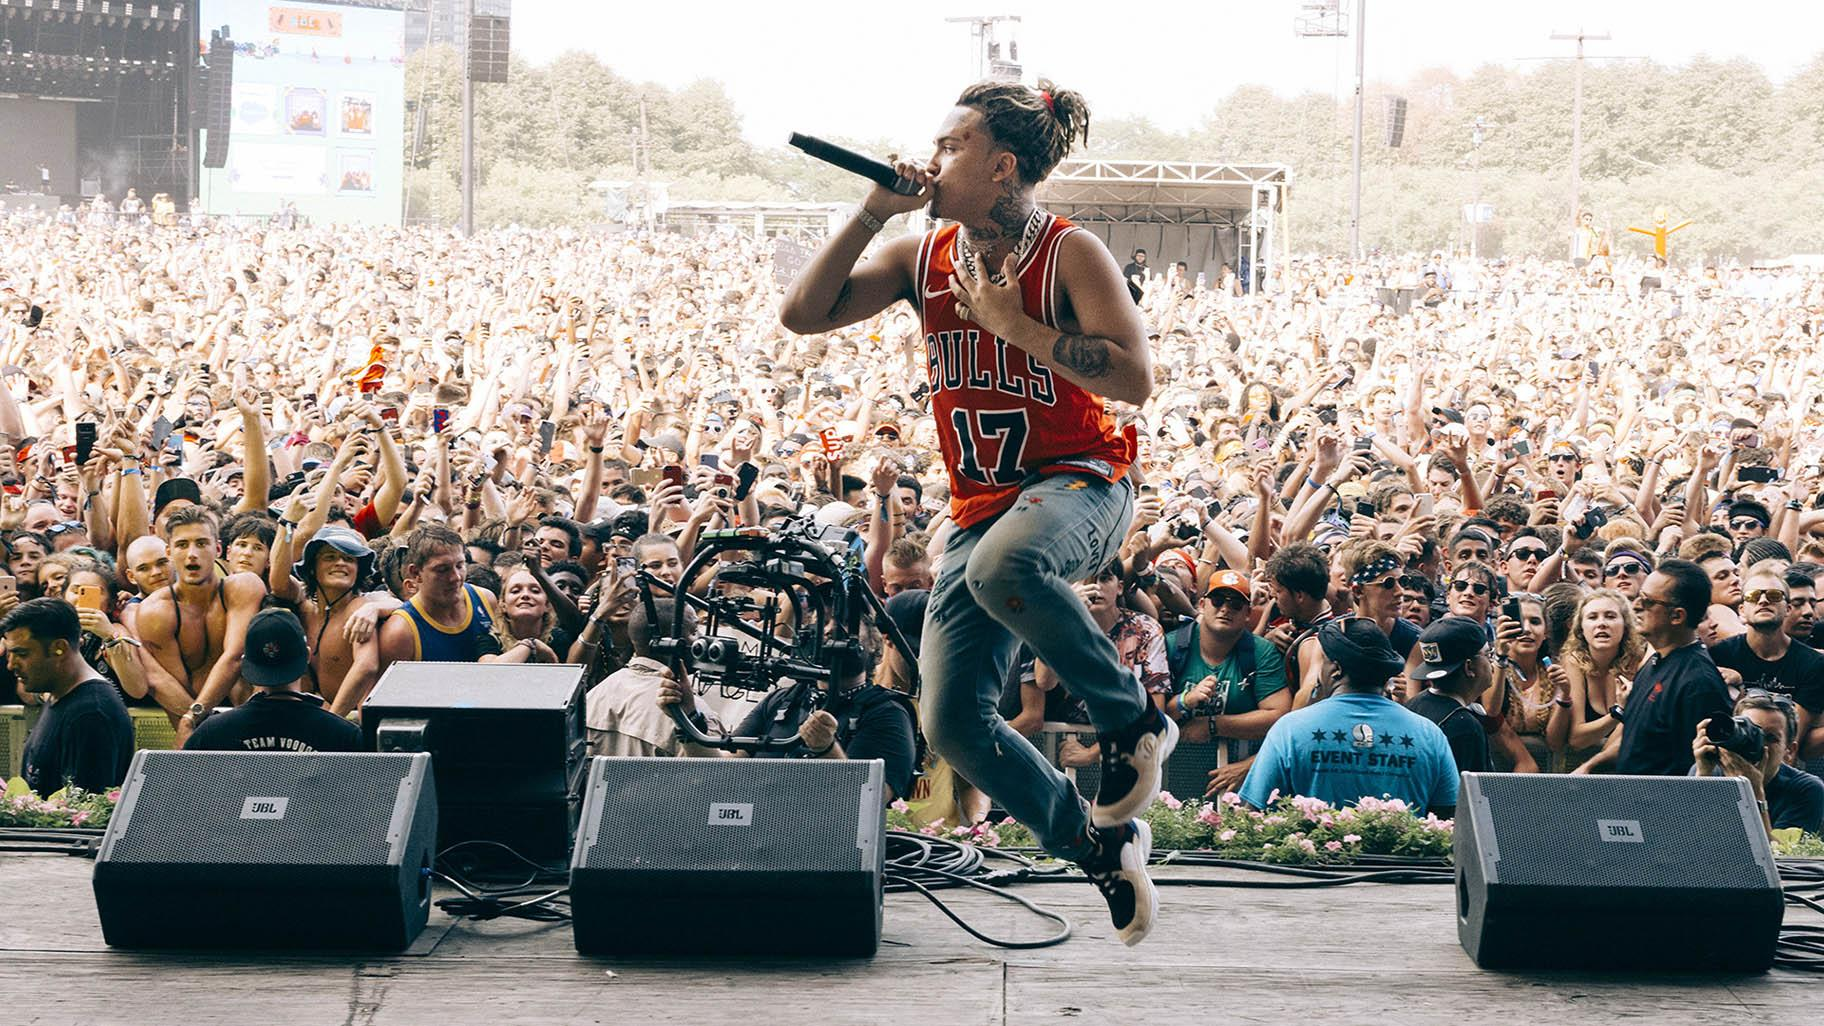 Lil Pump on stage at Lollapalooza on August 4, 2018. Lollapalooza will be back at full capacity from July 29 to August 29.  1, 2021. (Scott Witt / Lollapalooza 2018)